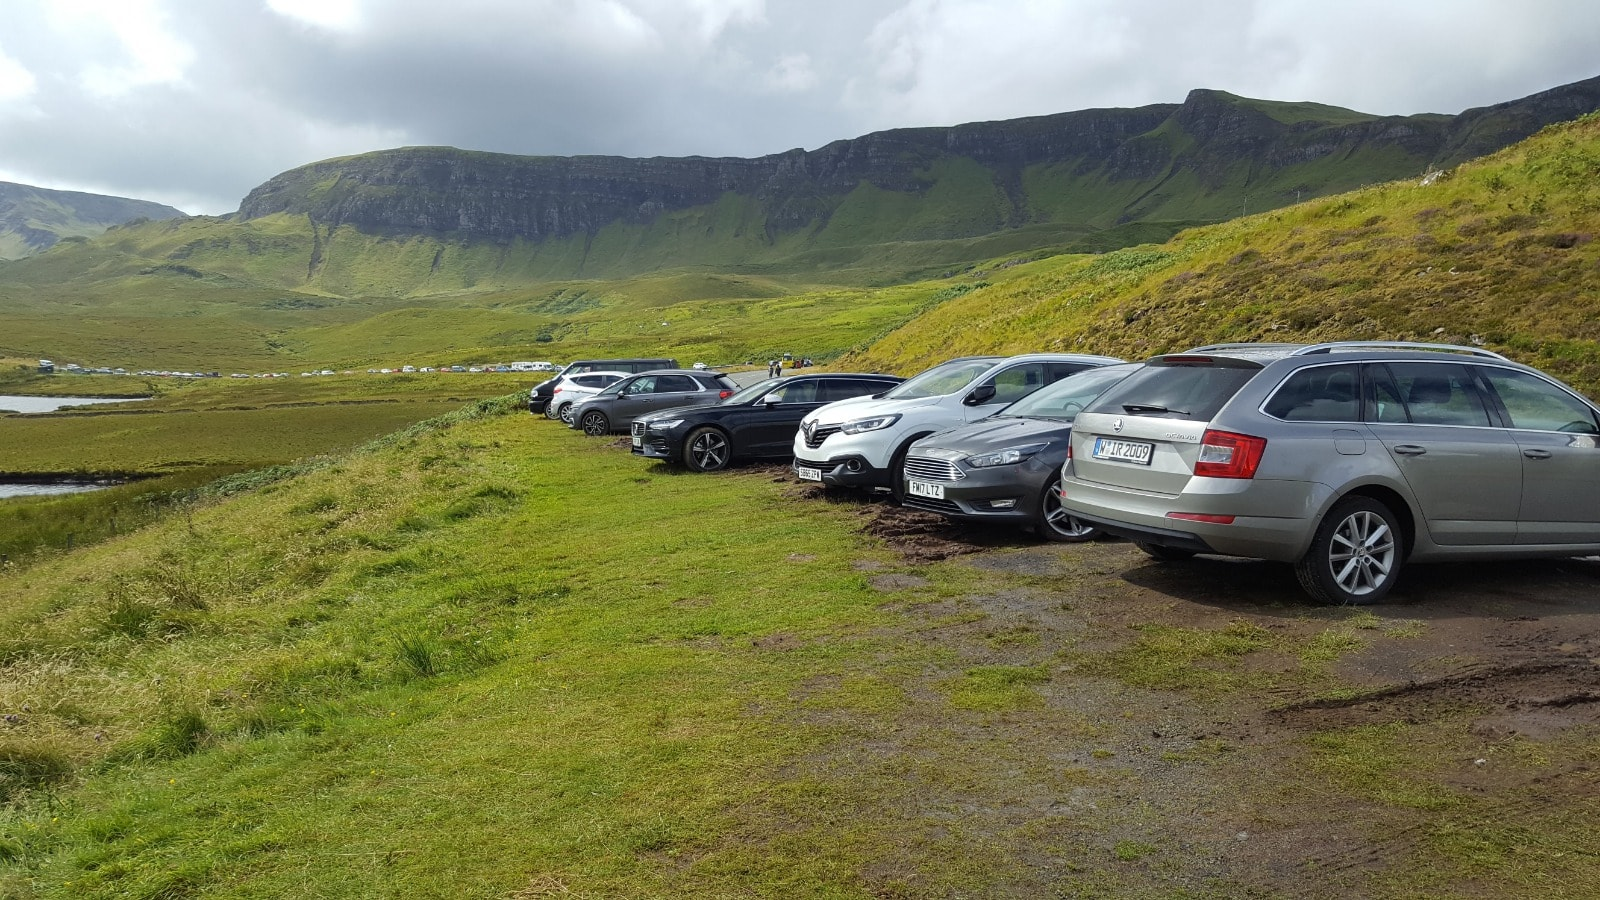 Parking at the car park for Storr on Skye will soon be improved.